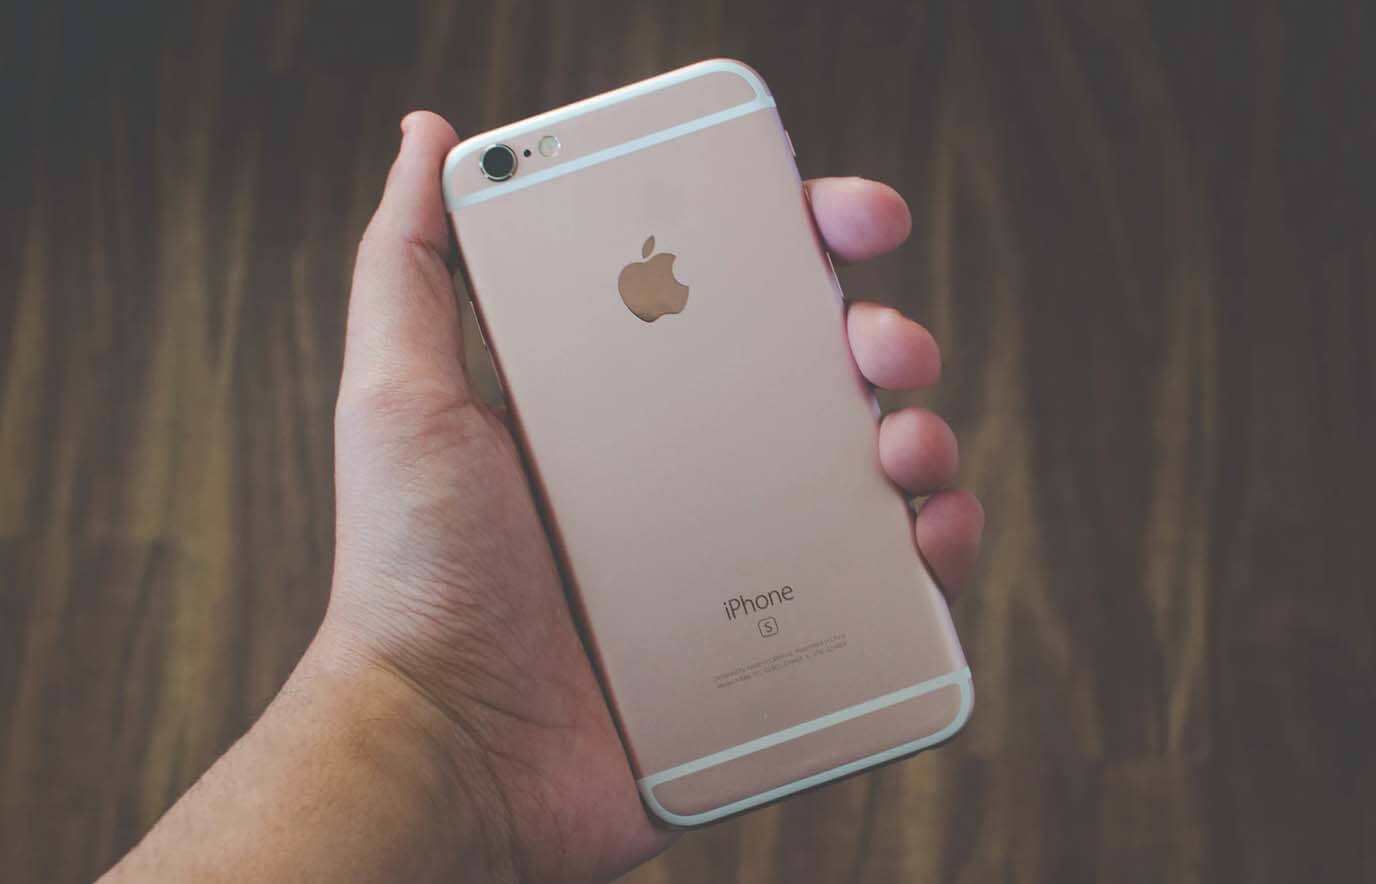 Is de iPhone 6S nog bruikbaar in 2020?